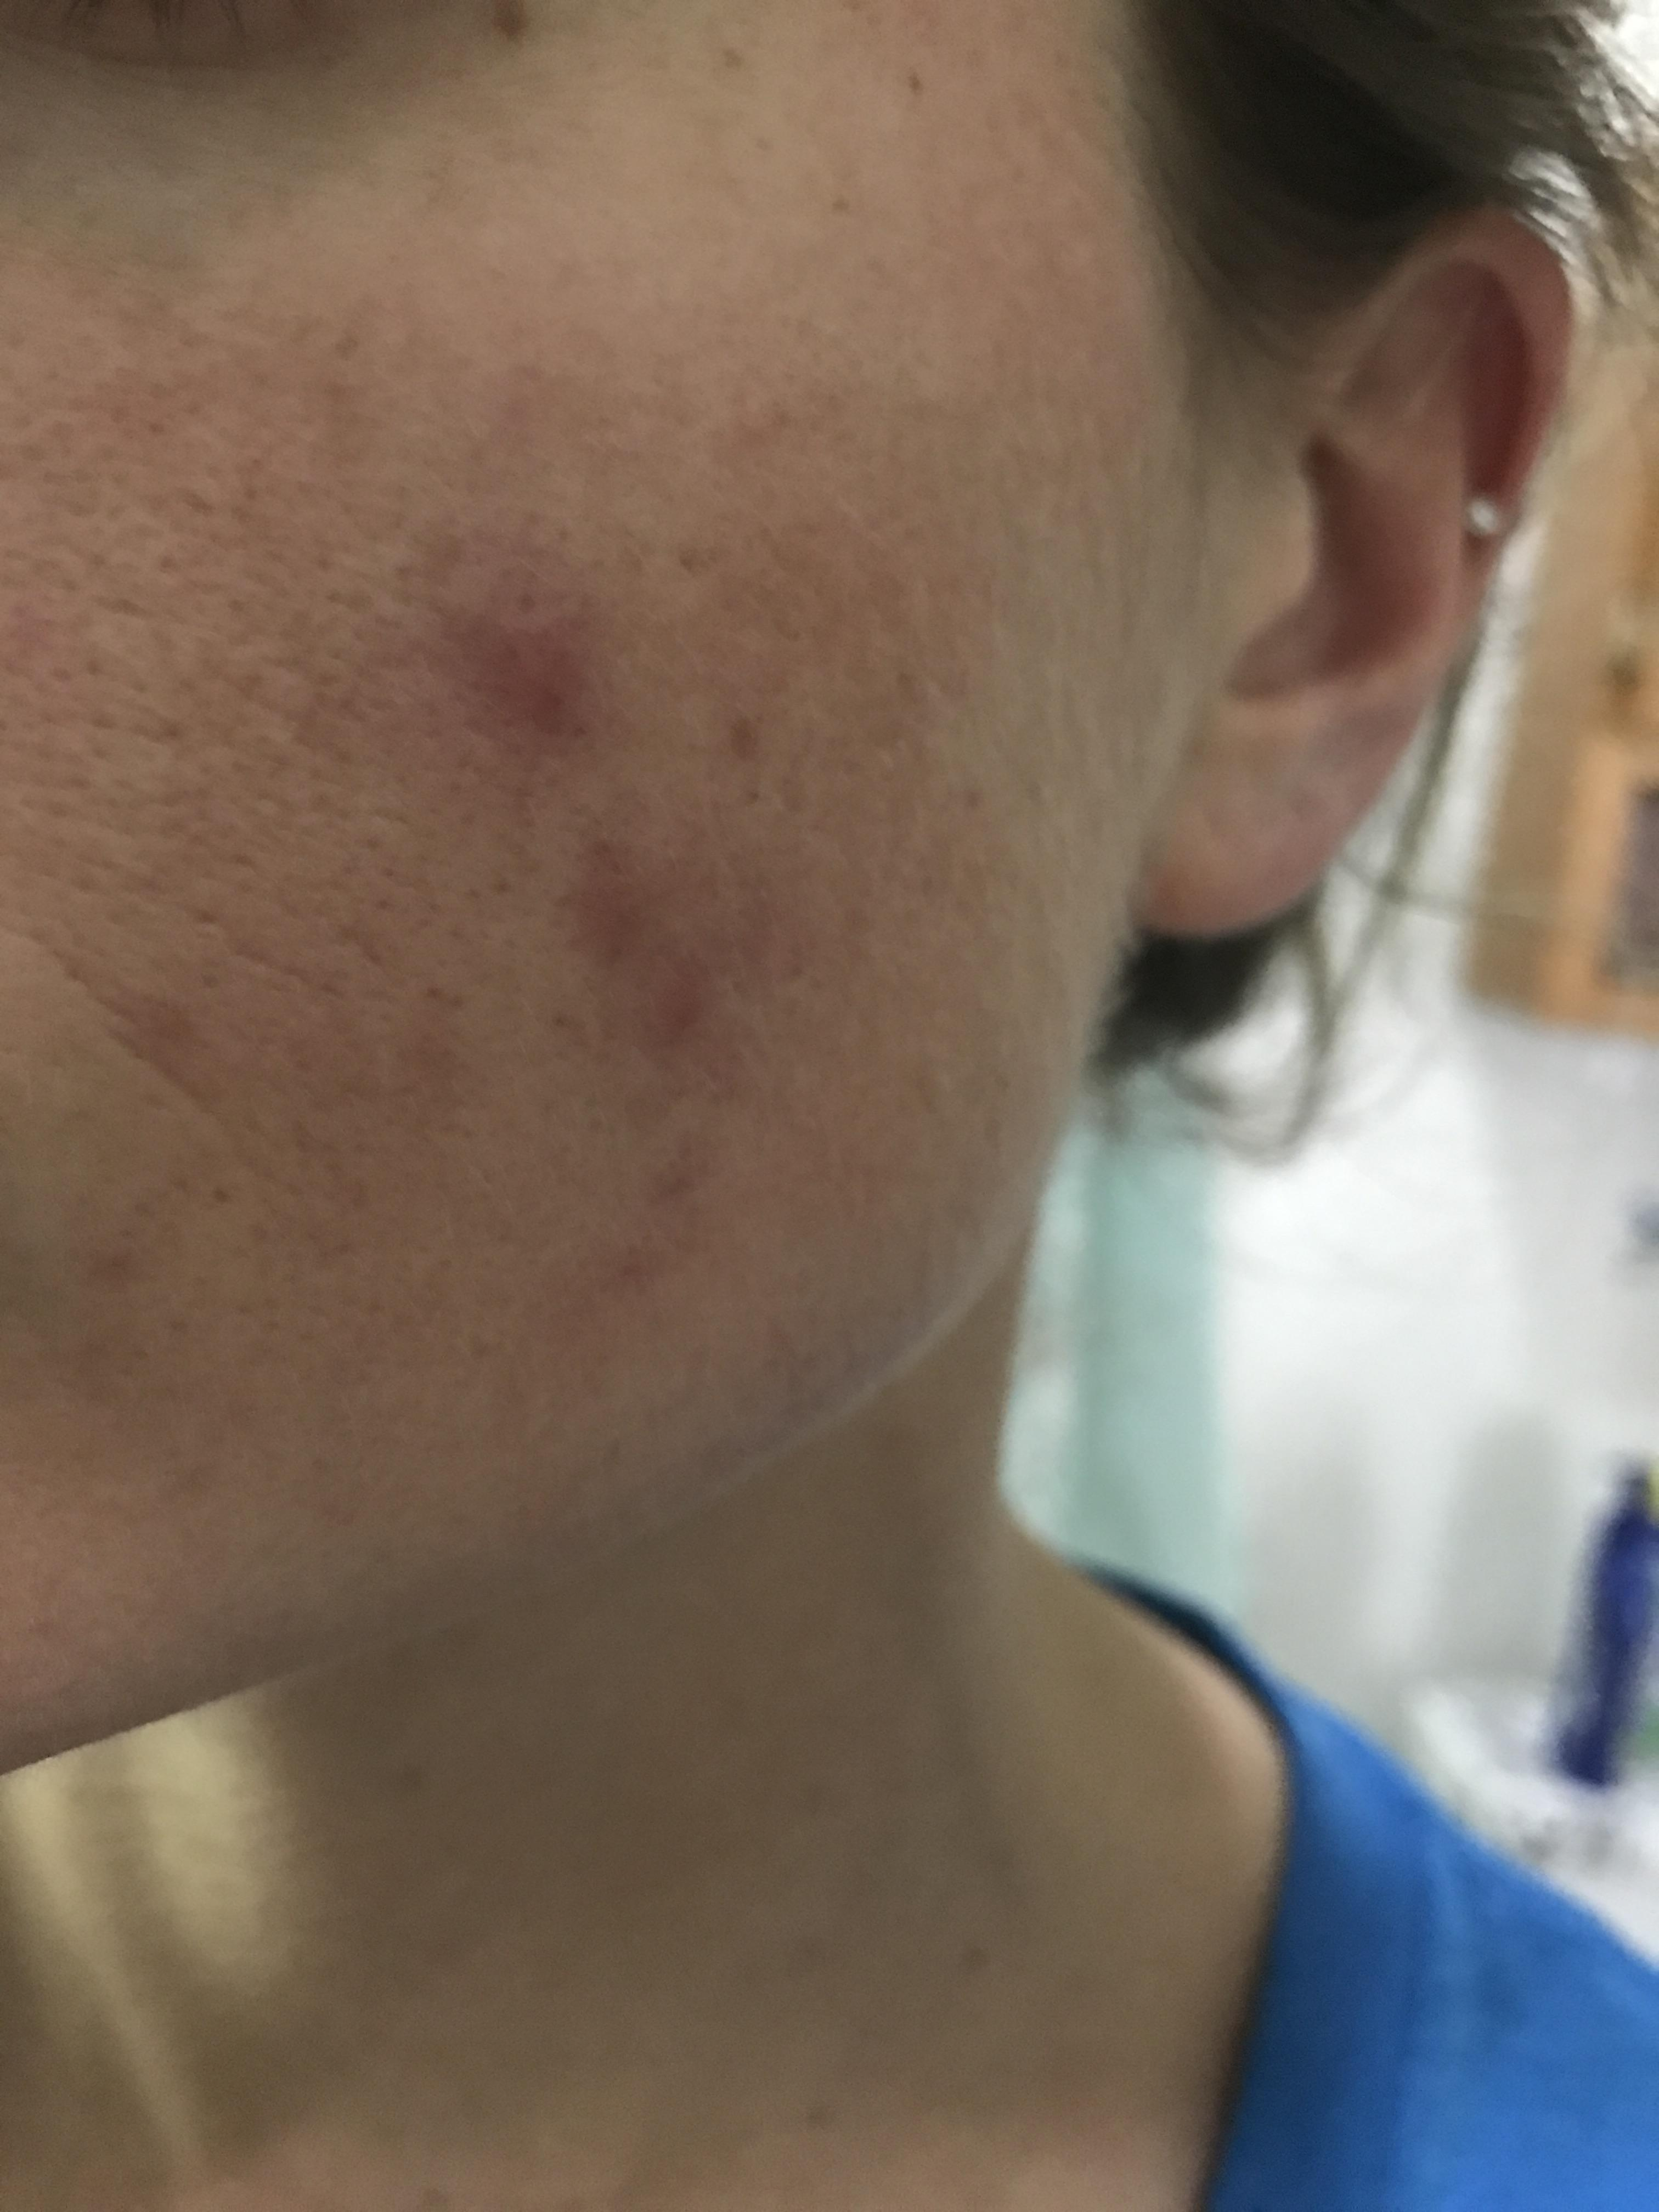 Pimples clustered on one cheek adult acne acne community img0999g pooptronica